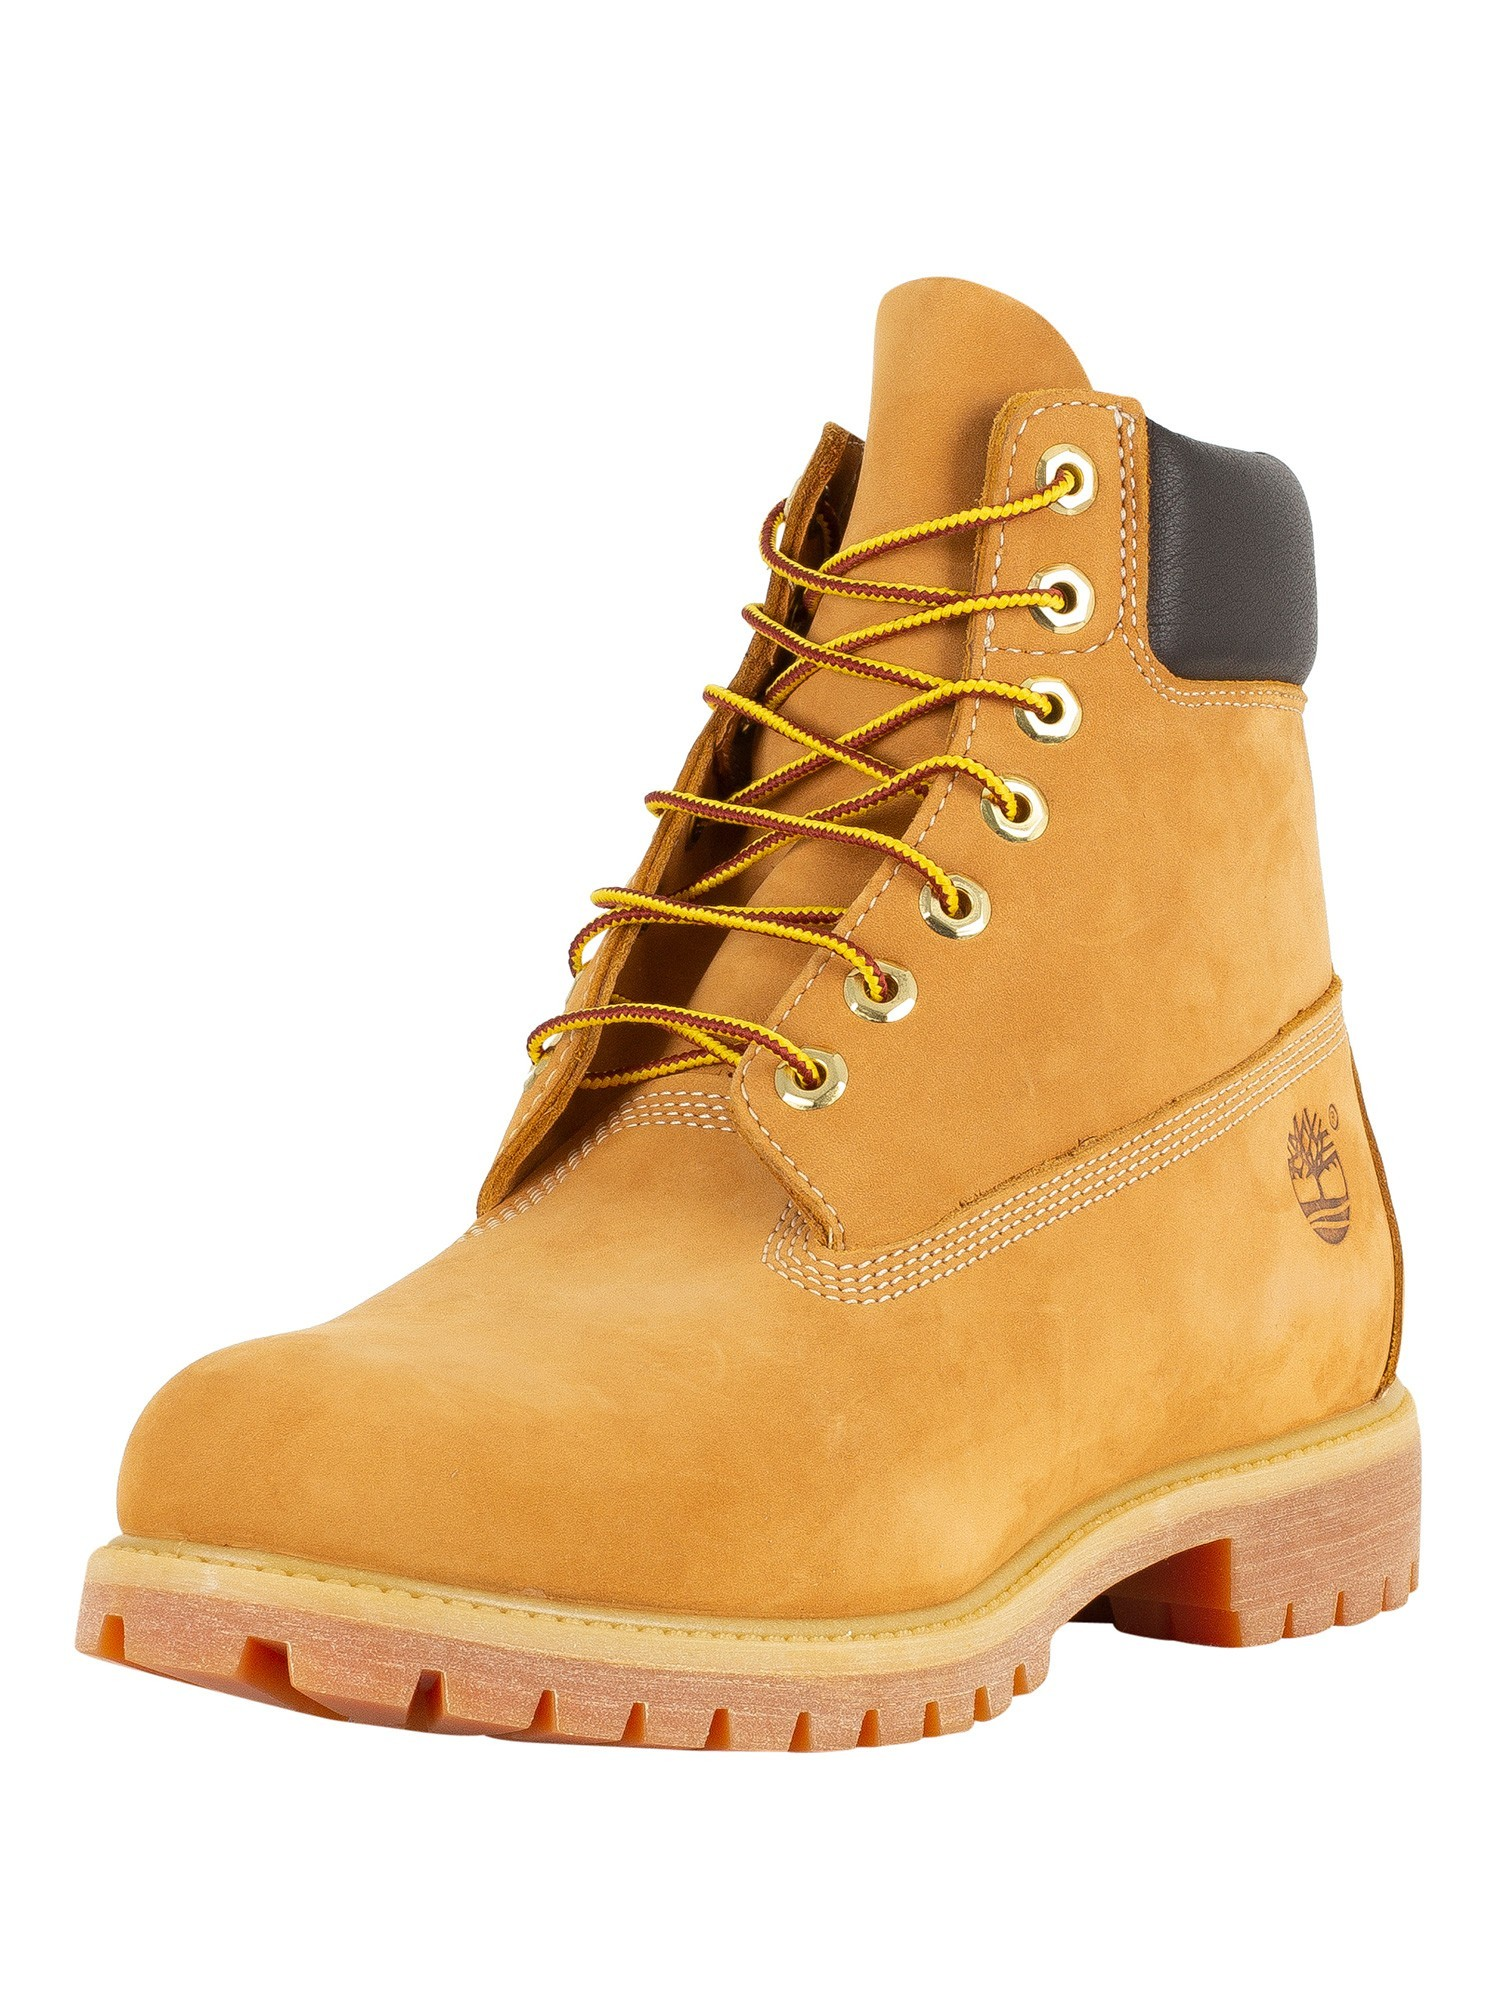 Timberland Yellow Inch Bt Premium Af Boots 6 Wheat lFJKc13T